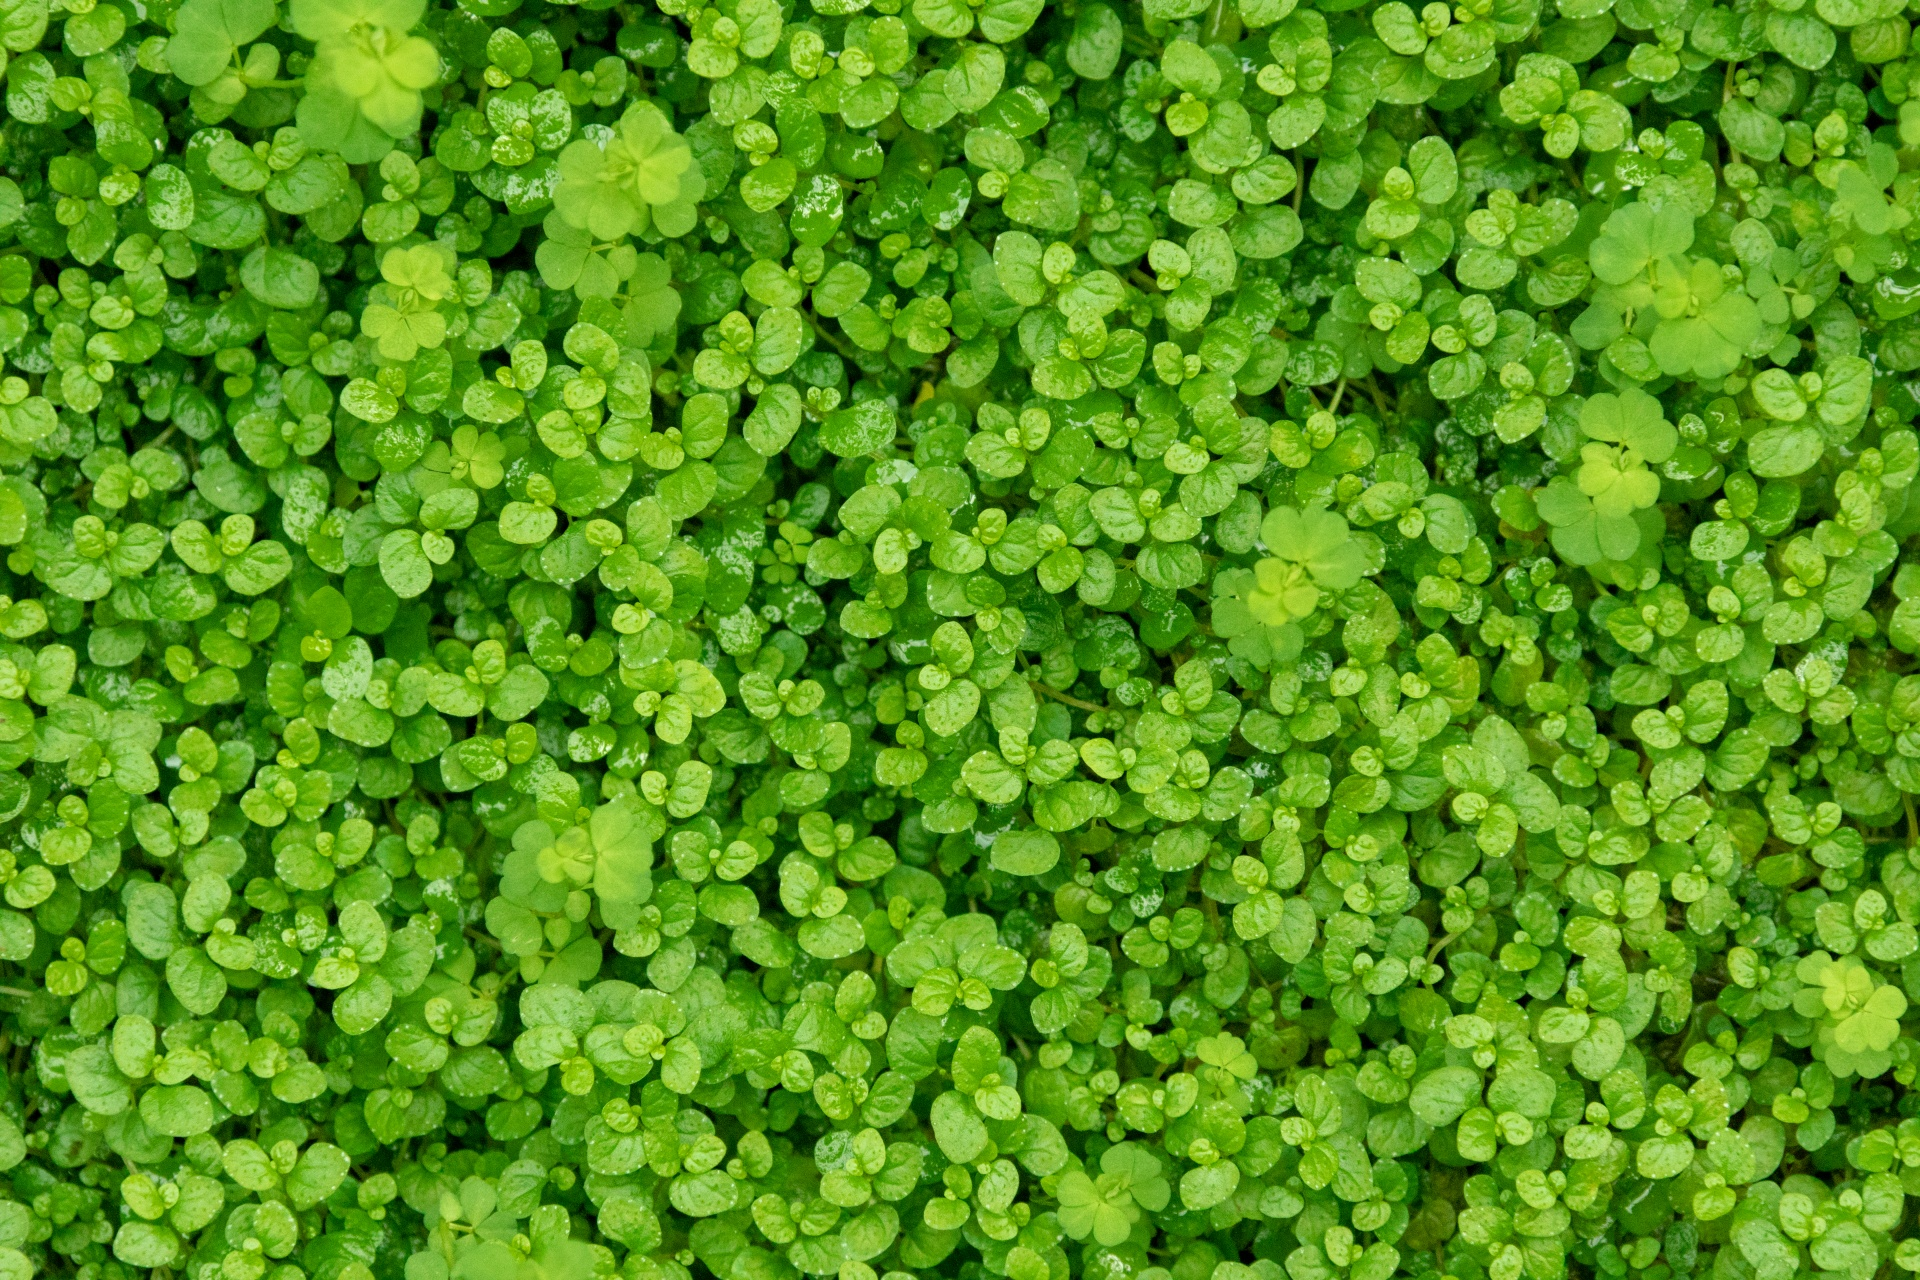 Green Leaves Free Stock Photo - Public Domain Pictures